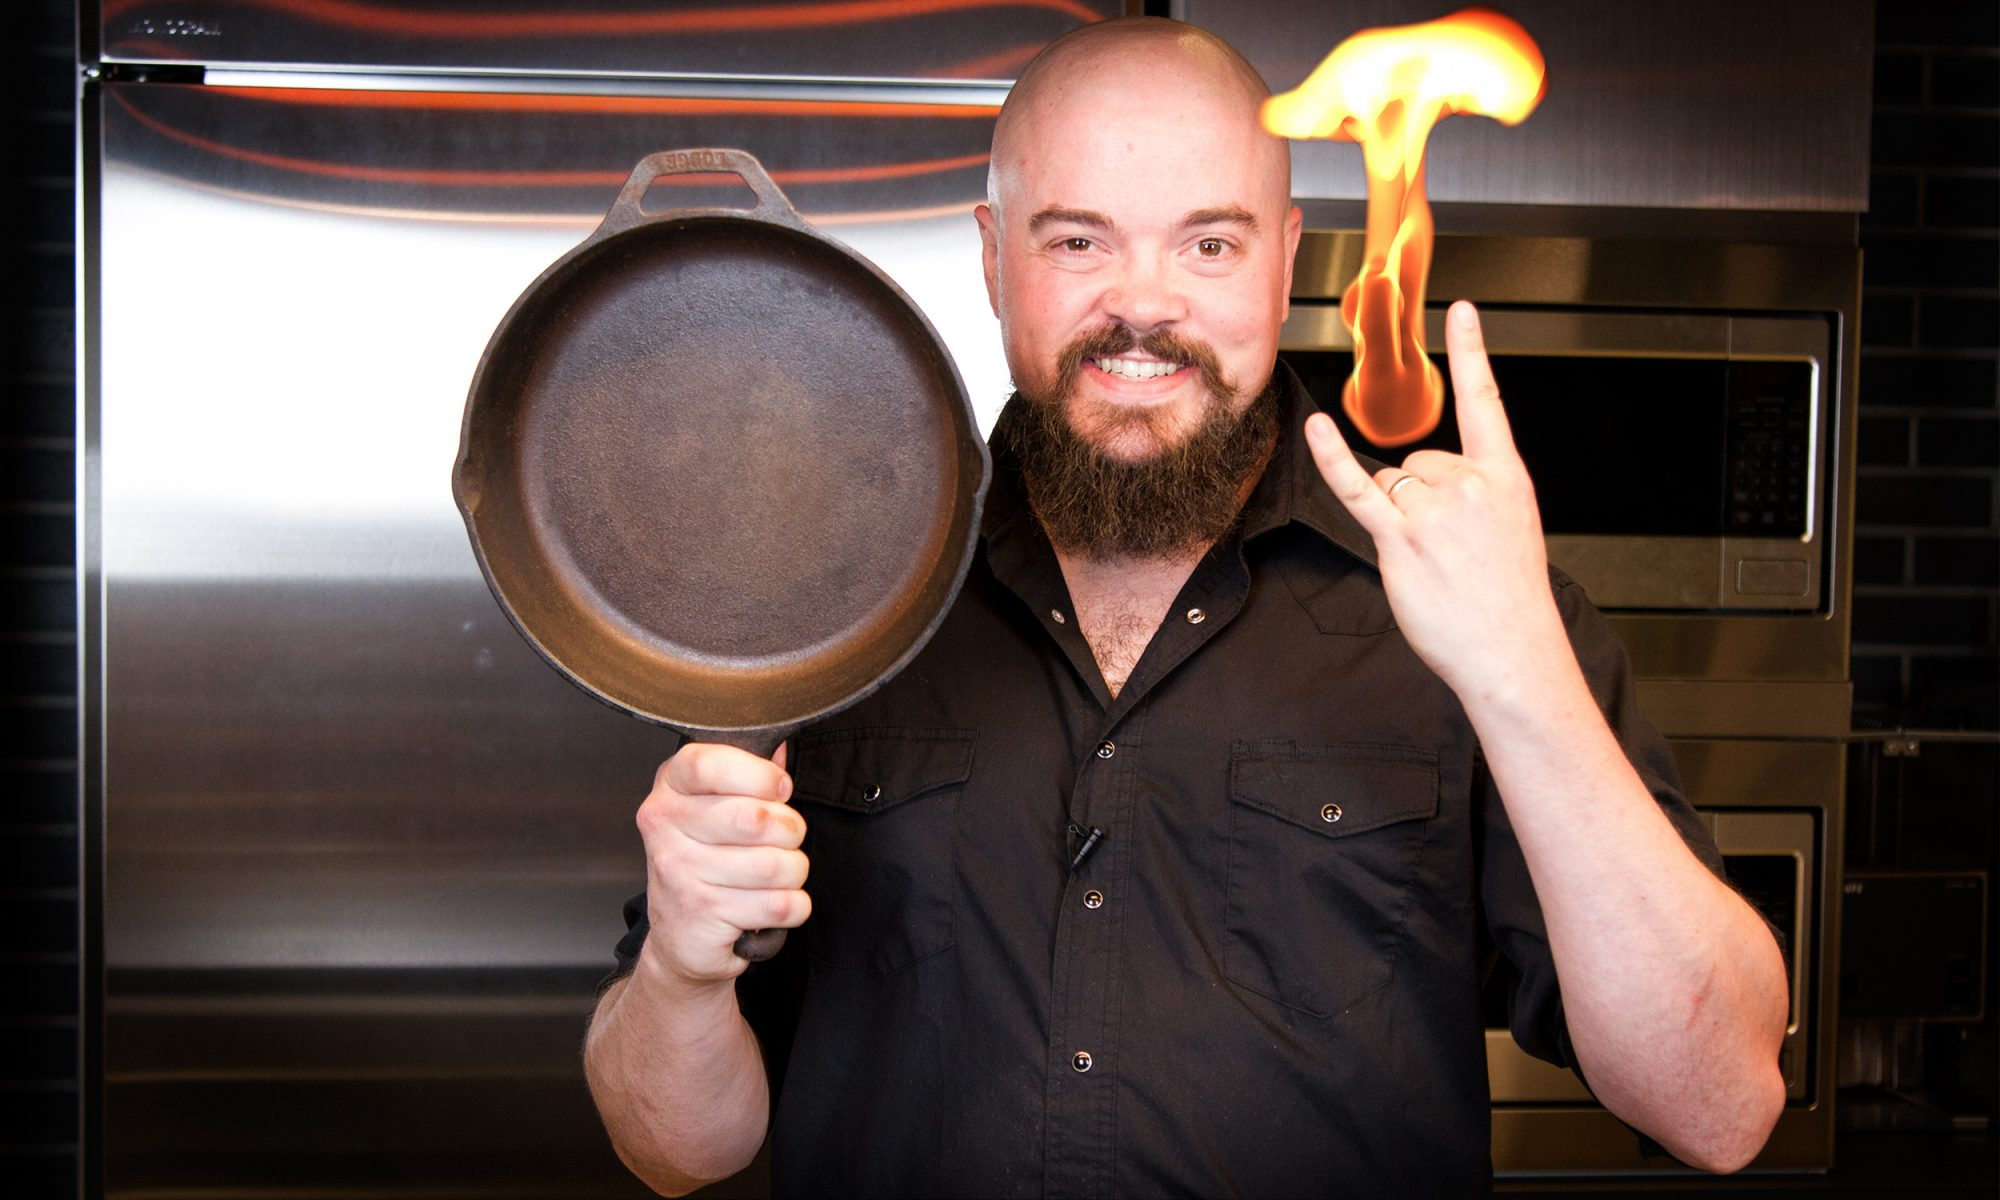 EC: Top Chef Isaac Toups' Quick and Dirty Tips for Cleaning a Cast-Iron Pan